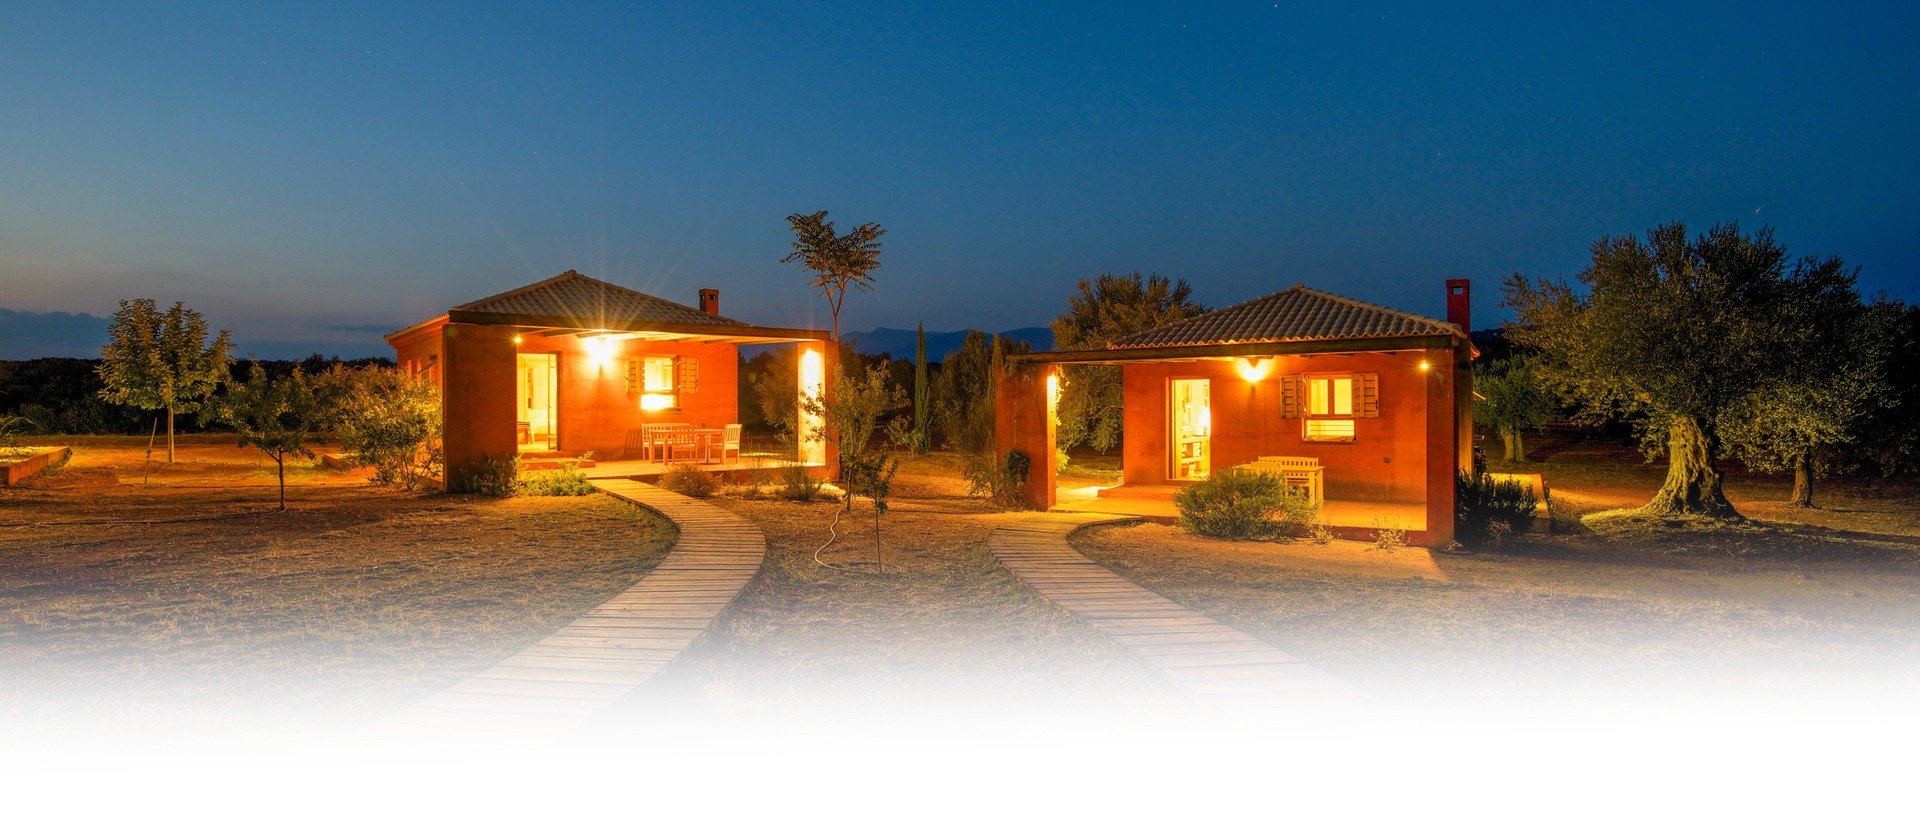 Eumelia Cottages at Night